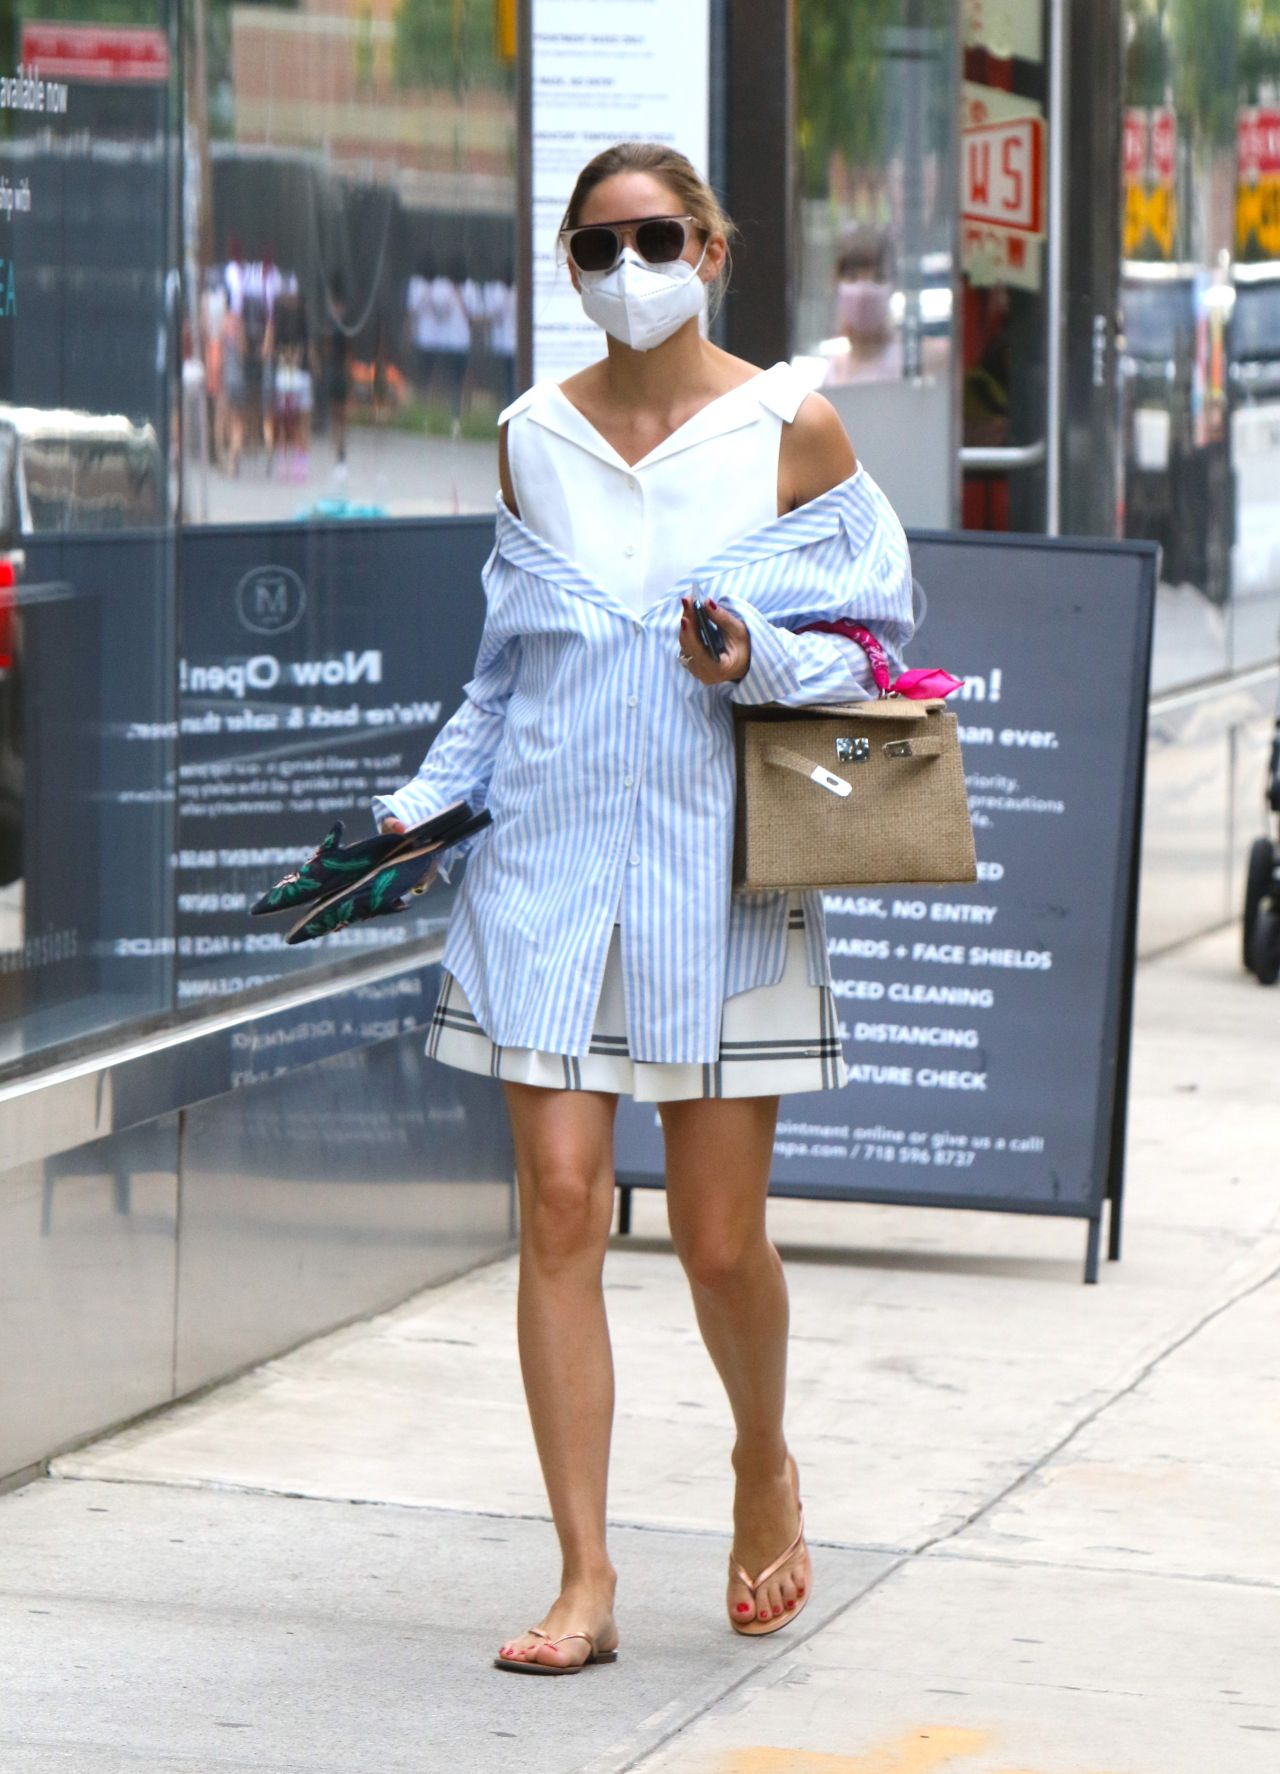 Selma Blair in White Shirt-Dress and Pink Face Mask 2020 (8 Photos)